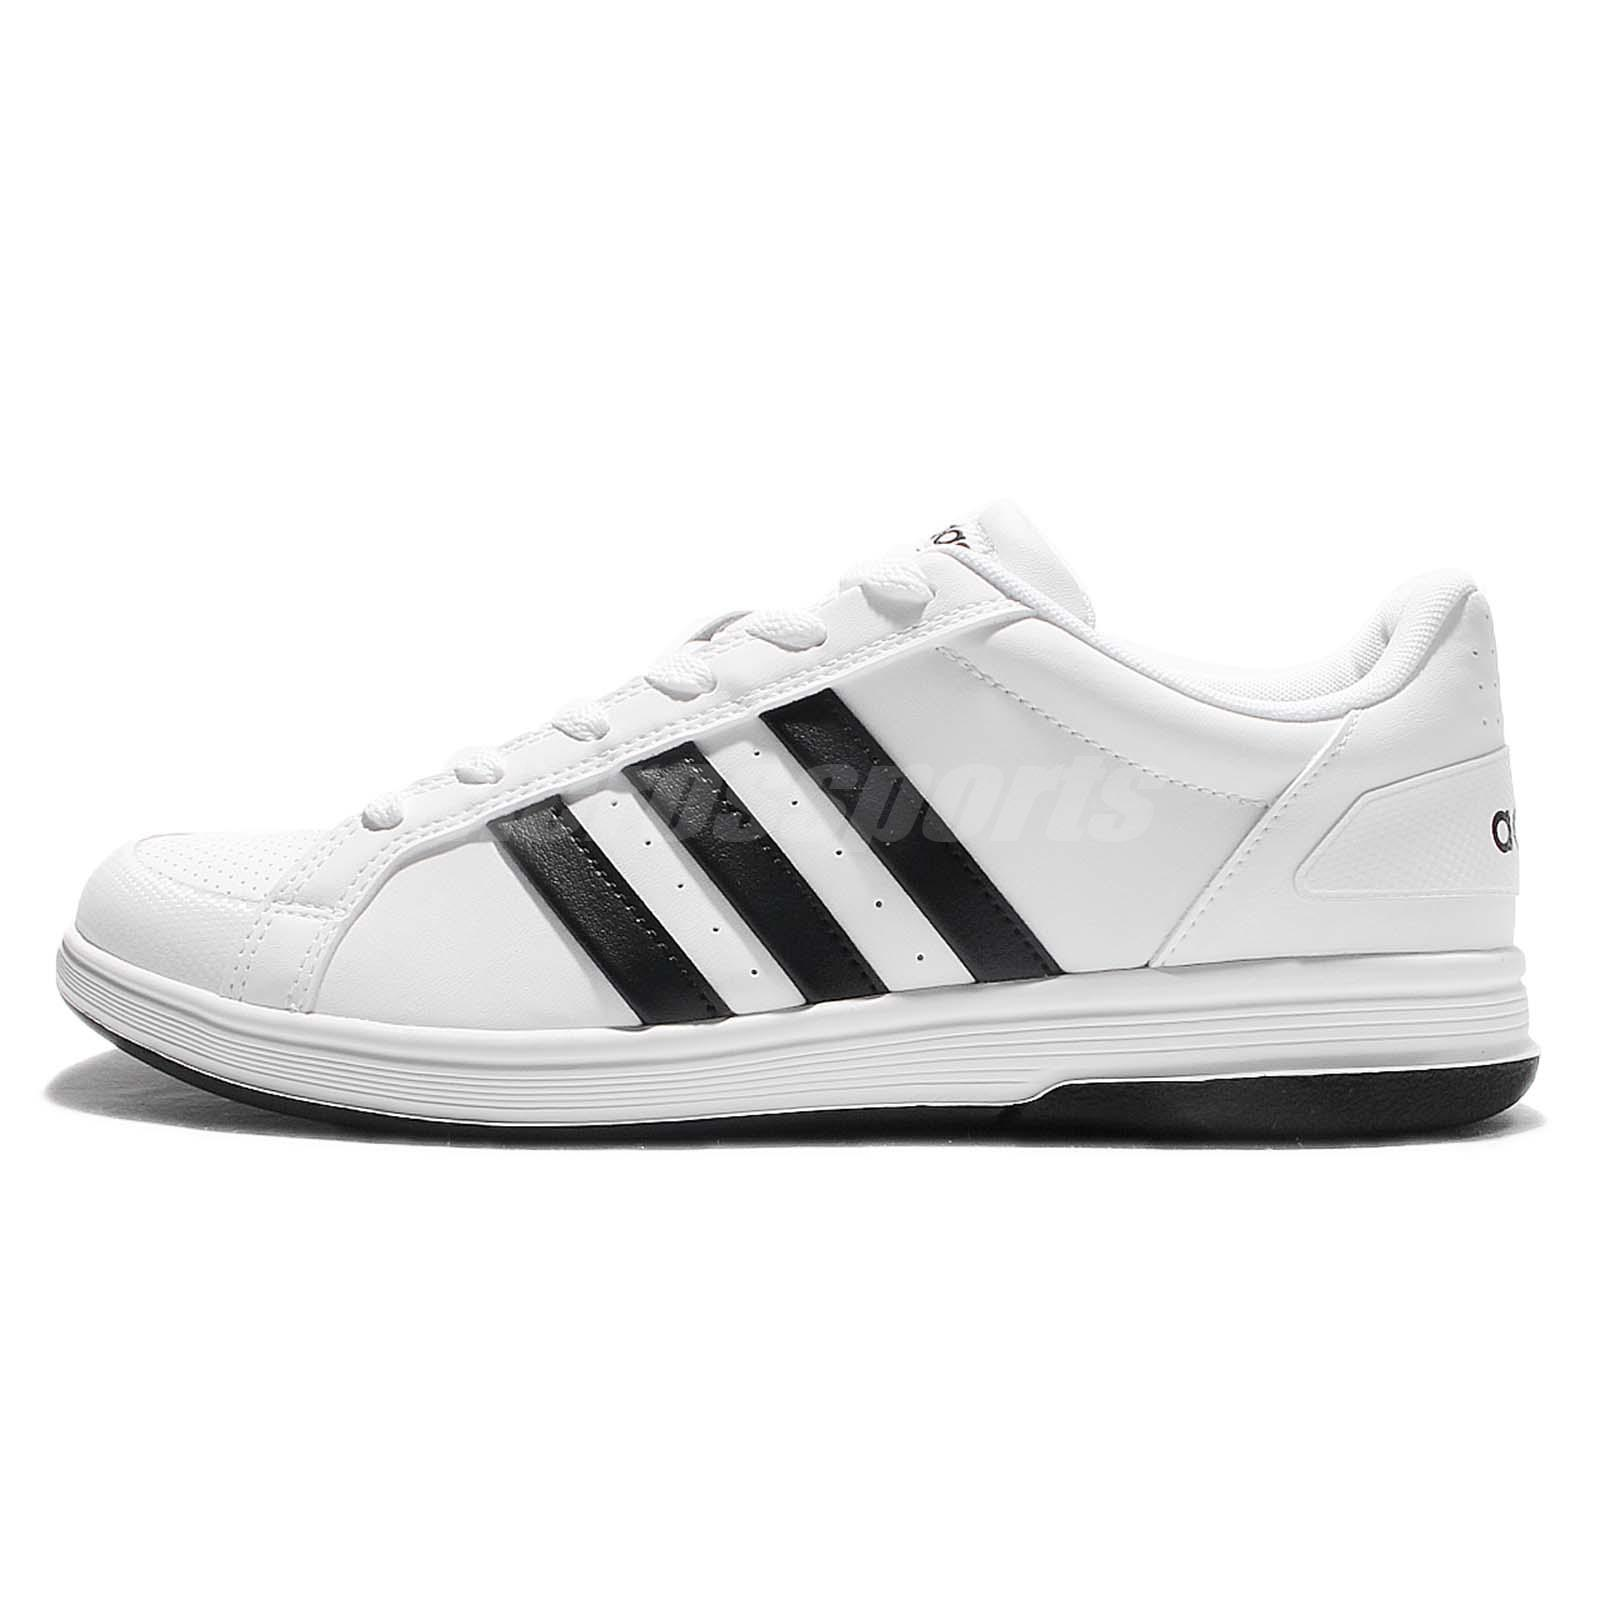 adidas oracle vii white black men casual tennis shoes. Black Bedroom Furniture Sets. Home Design Ideas